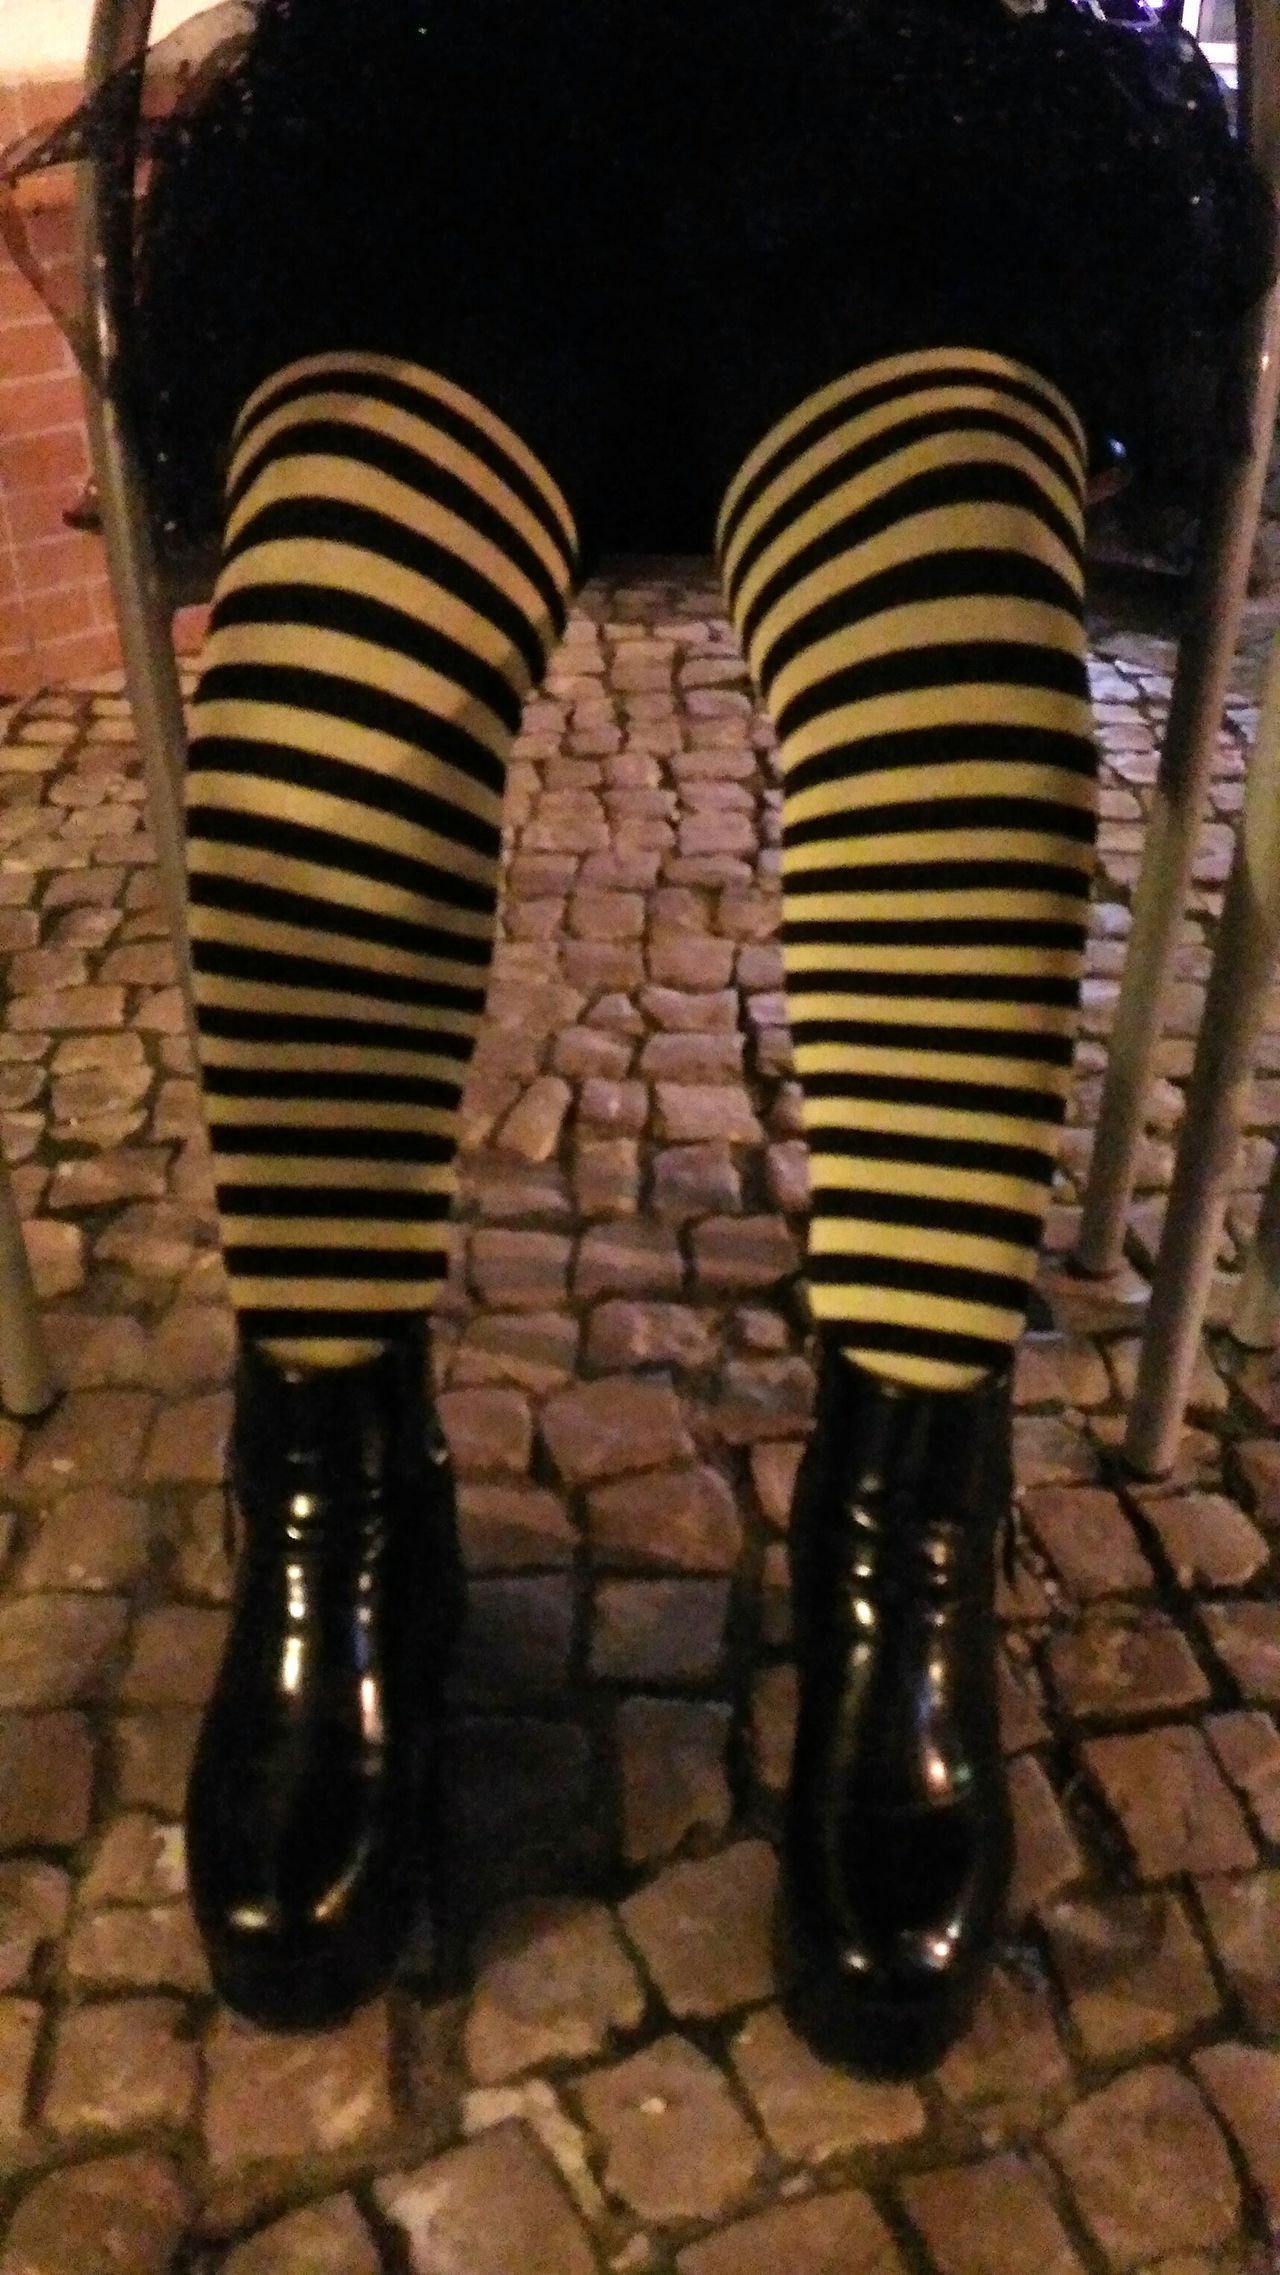 Color Contrast Colorful Socks Colors Of Carnival Carnival Eye4photography  Party Time Cobblestones Cobblestone EyeEm Gallery EyeEm Best Shots Check This Out Details Black Boots Yellow And Black Enjoying Life Having Fun Under The Table Relaxing Relaxing Moments Yellow Socks Showcase: February Week On Eyeem Two Legs At Night Bright Colors